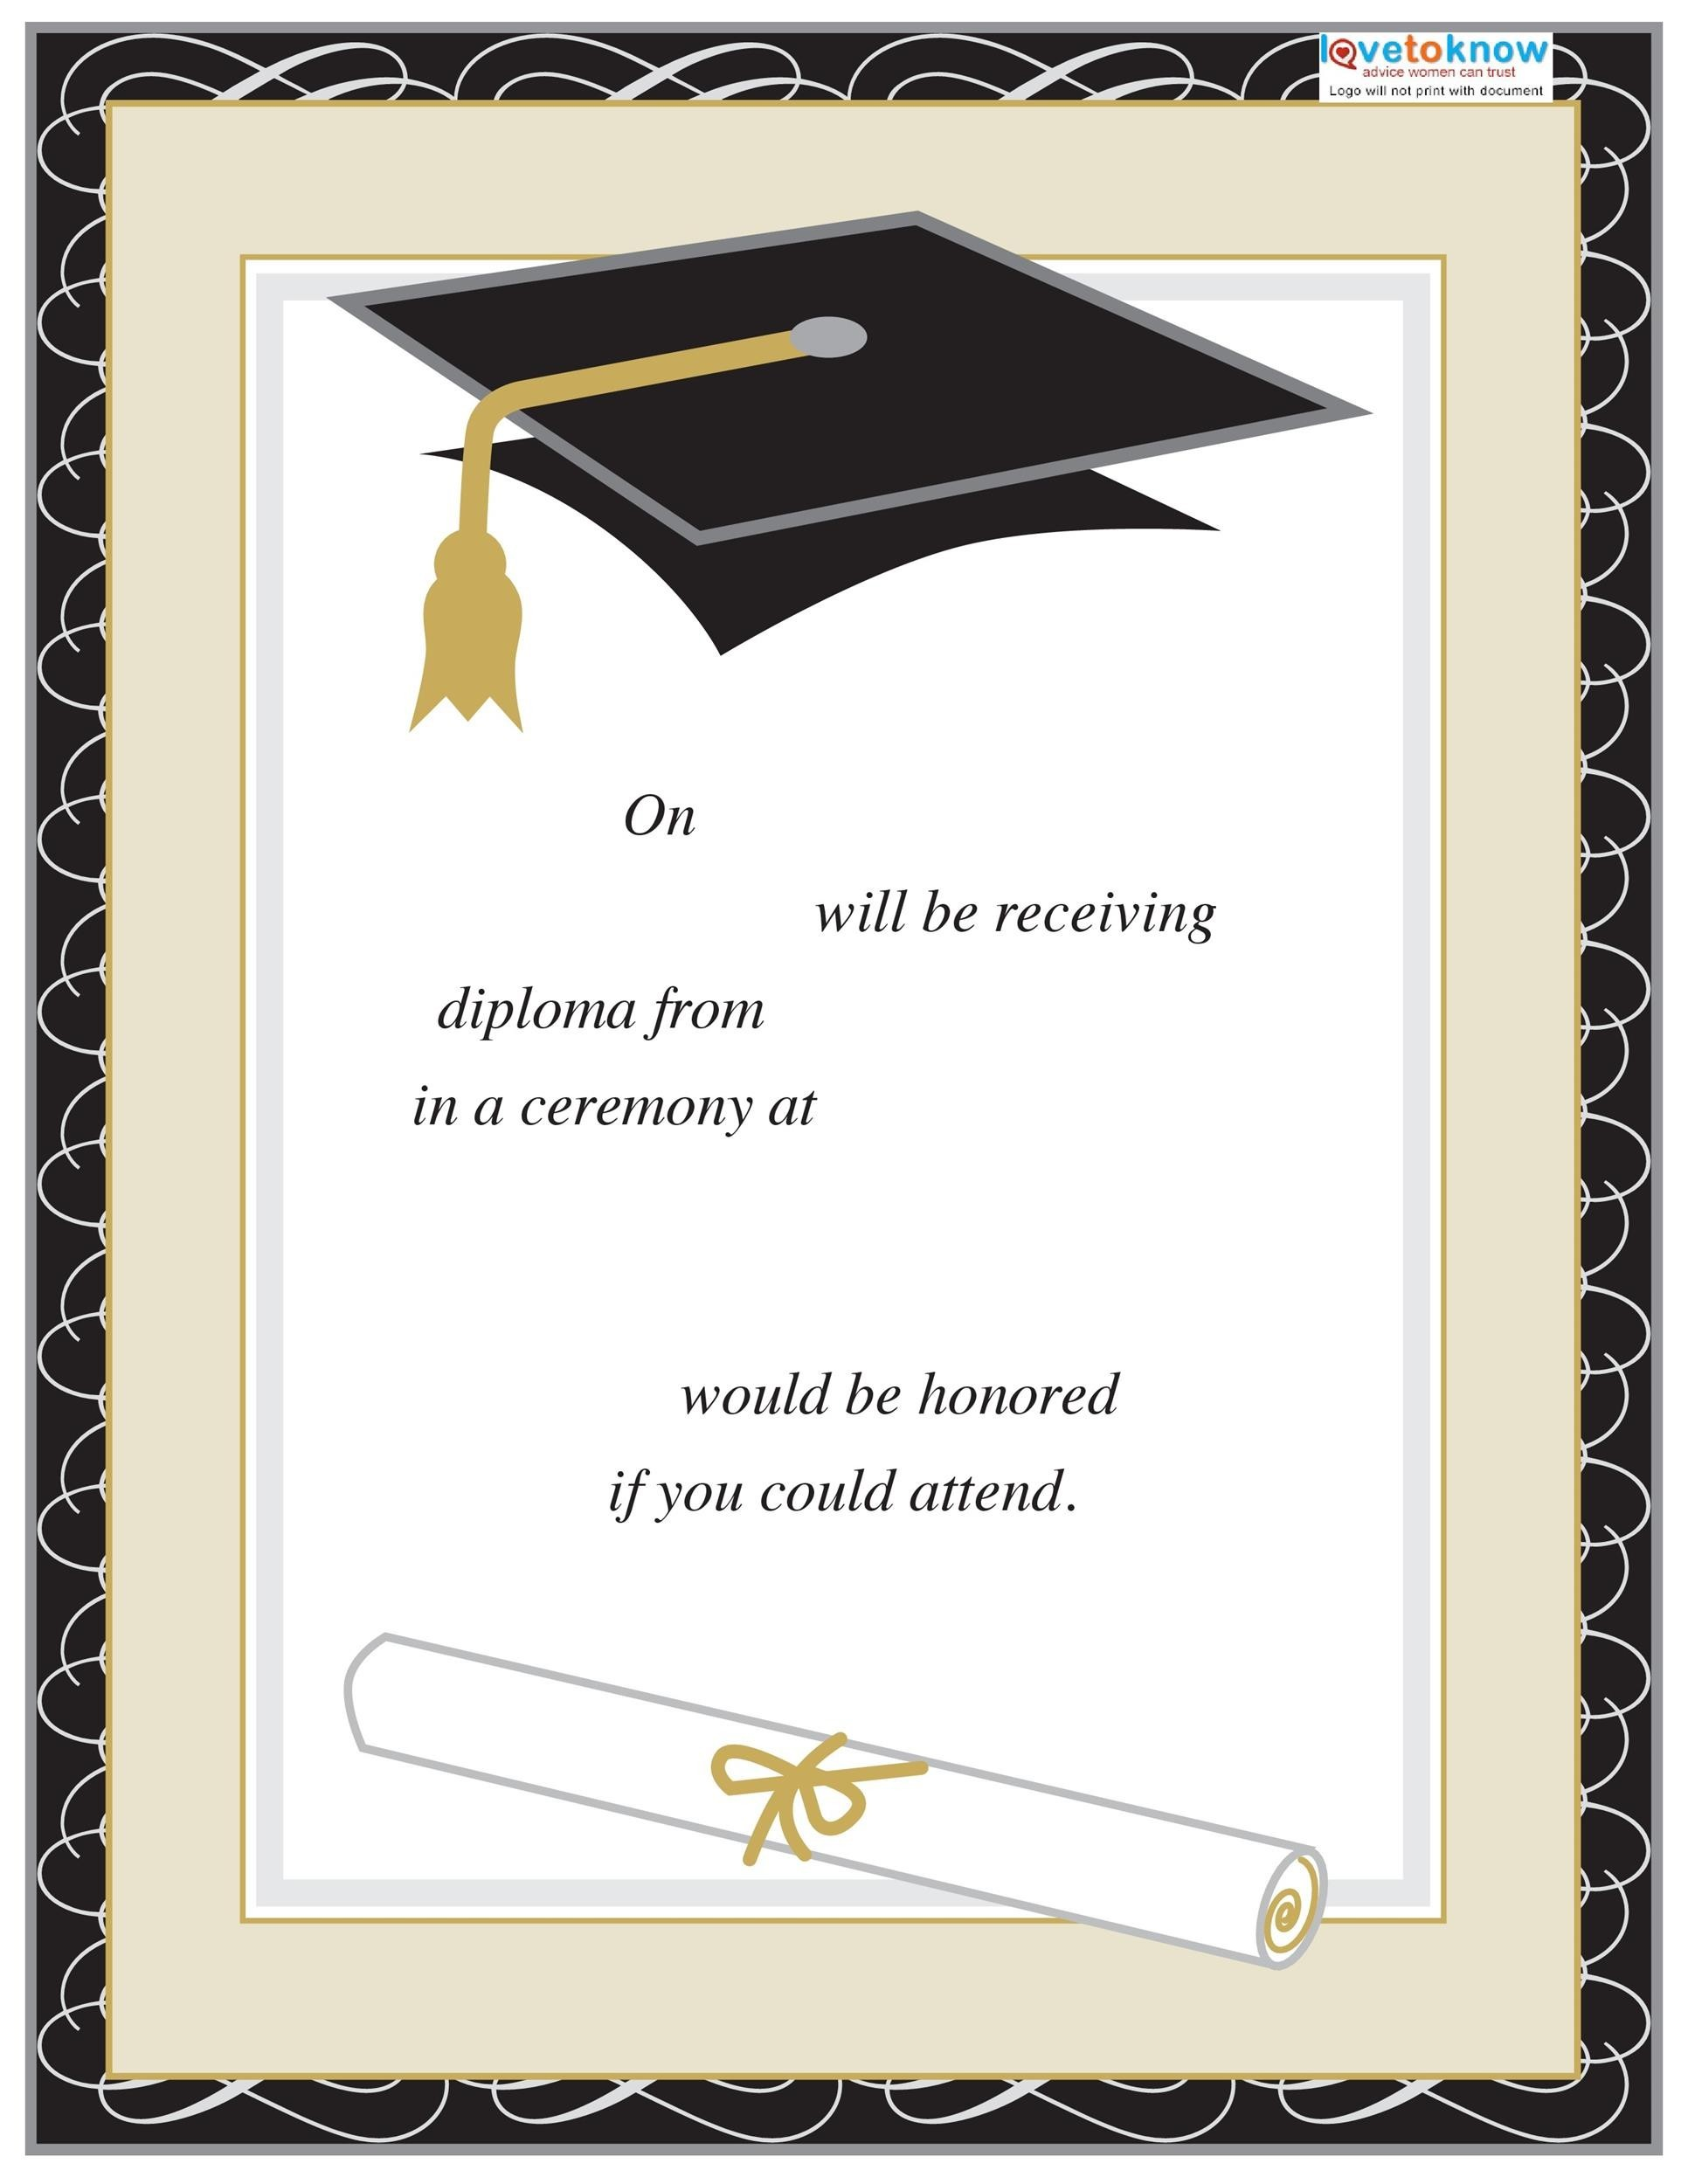 photograph regarding Graduation Cards Printable referred to as 40+ Free of charge Commencement Invitation Templates ᐅ Template Lab